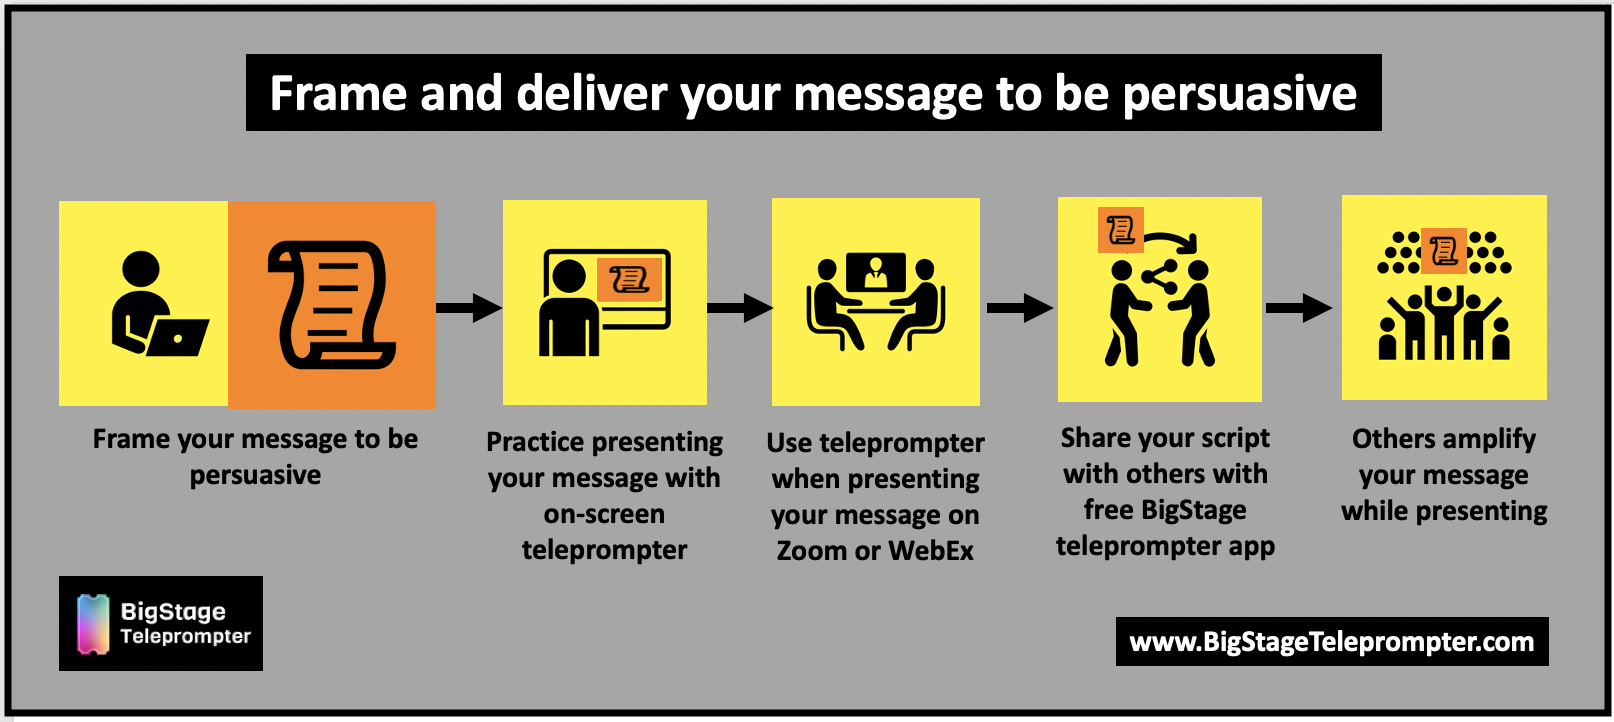 Frame and deliver your message on Zoom or WebEx more persuasively with the BigStage Teleprompter